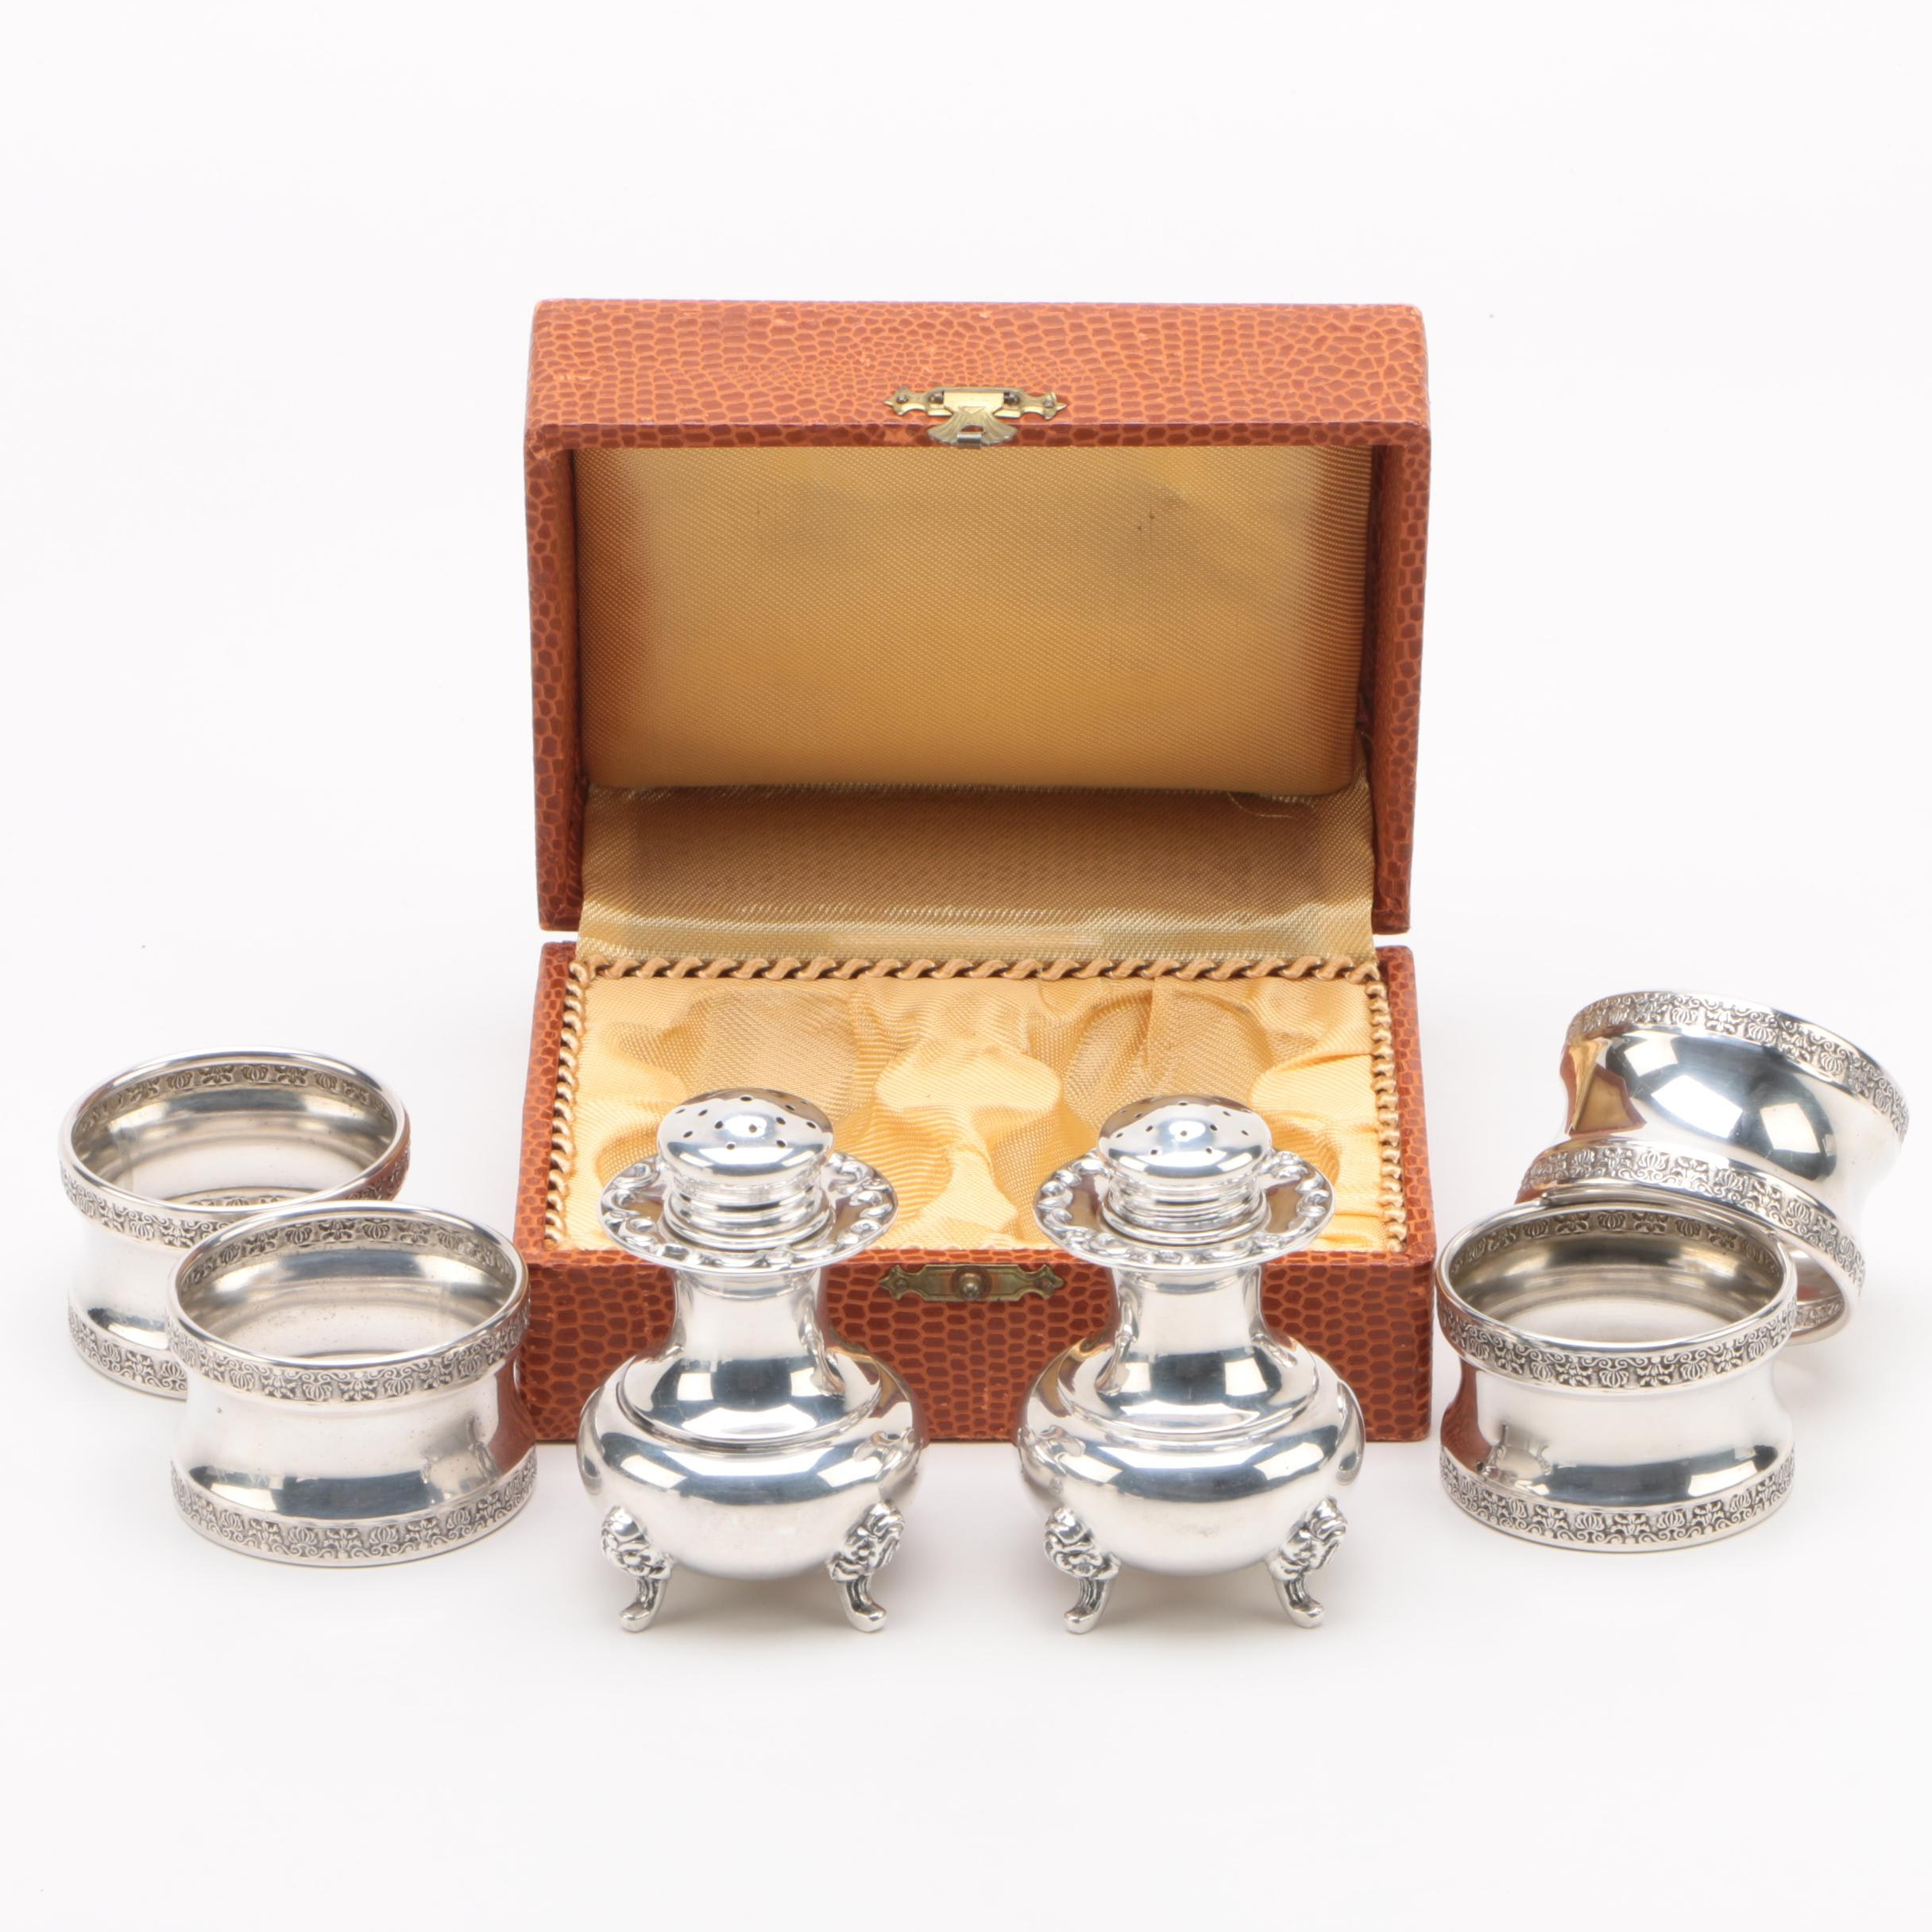 Gayer & Krauss German Sterling Shakers with Italian 800 Silver Napkin Rings